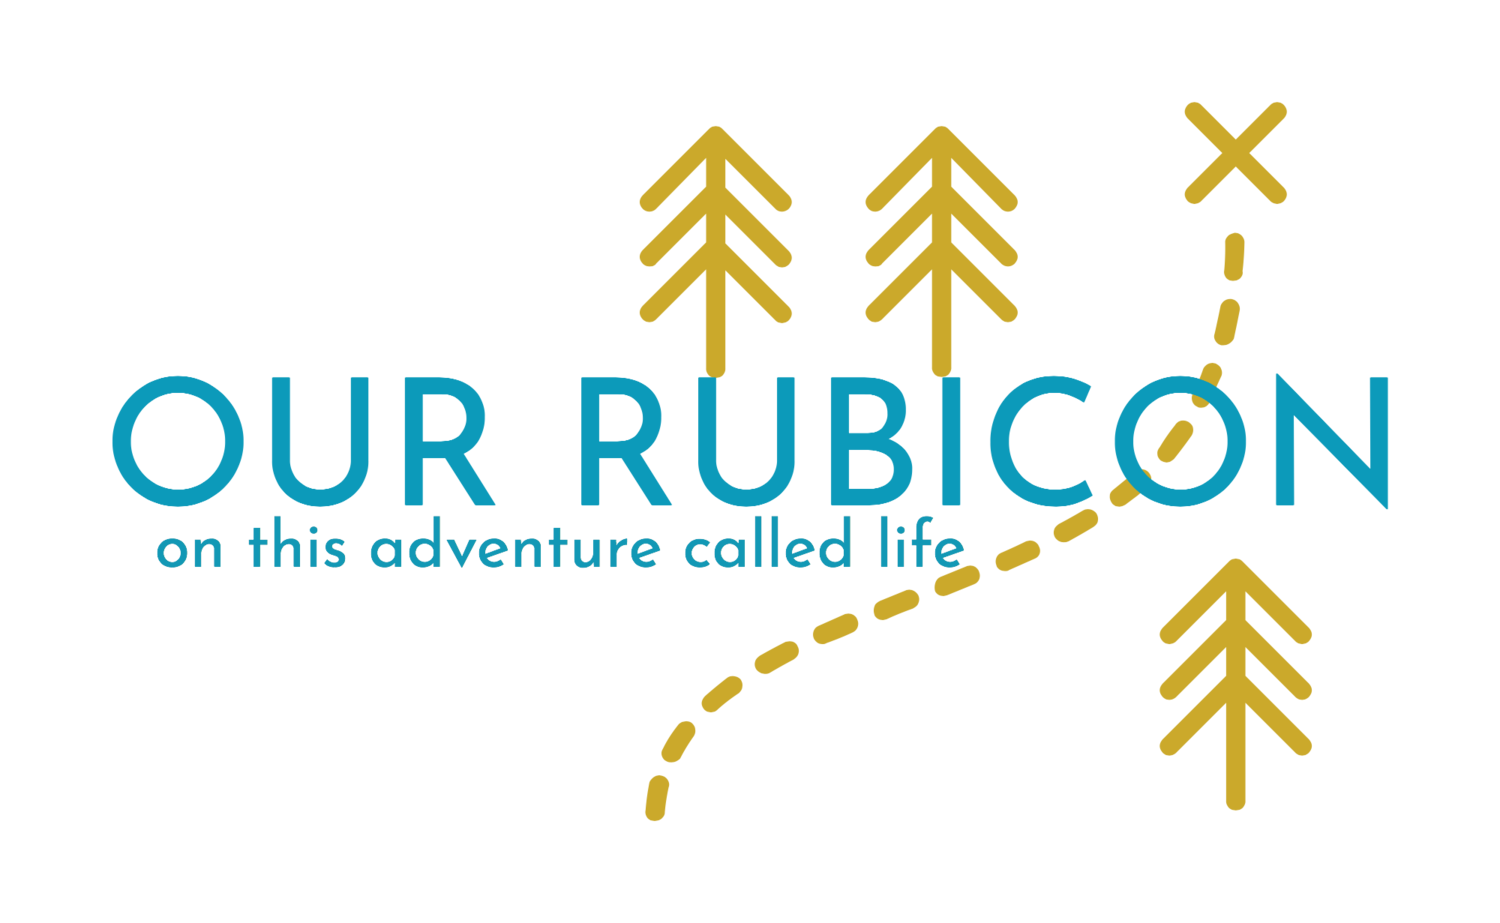 Our Rubicon